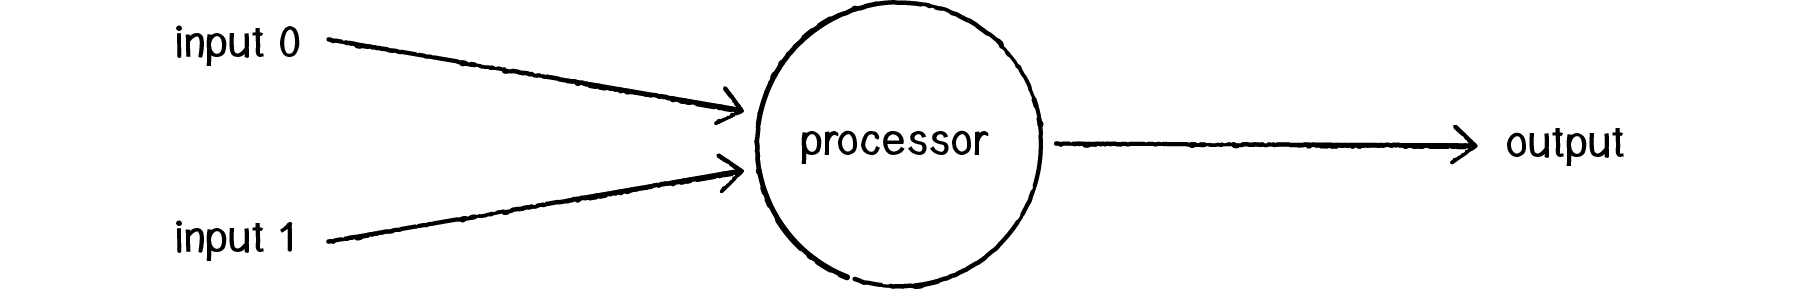 A diagram of a single layer perceptron